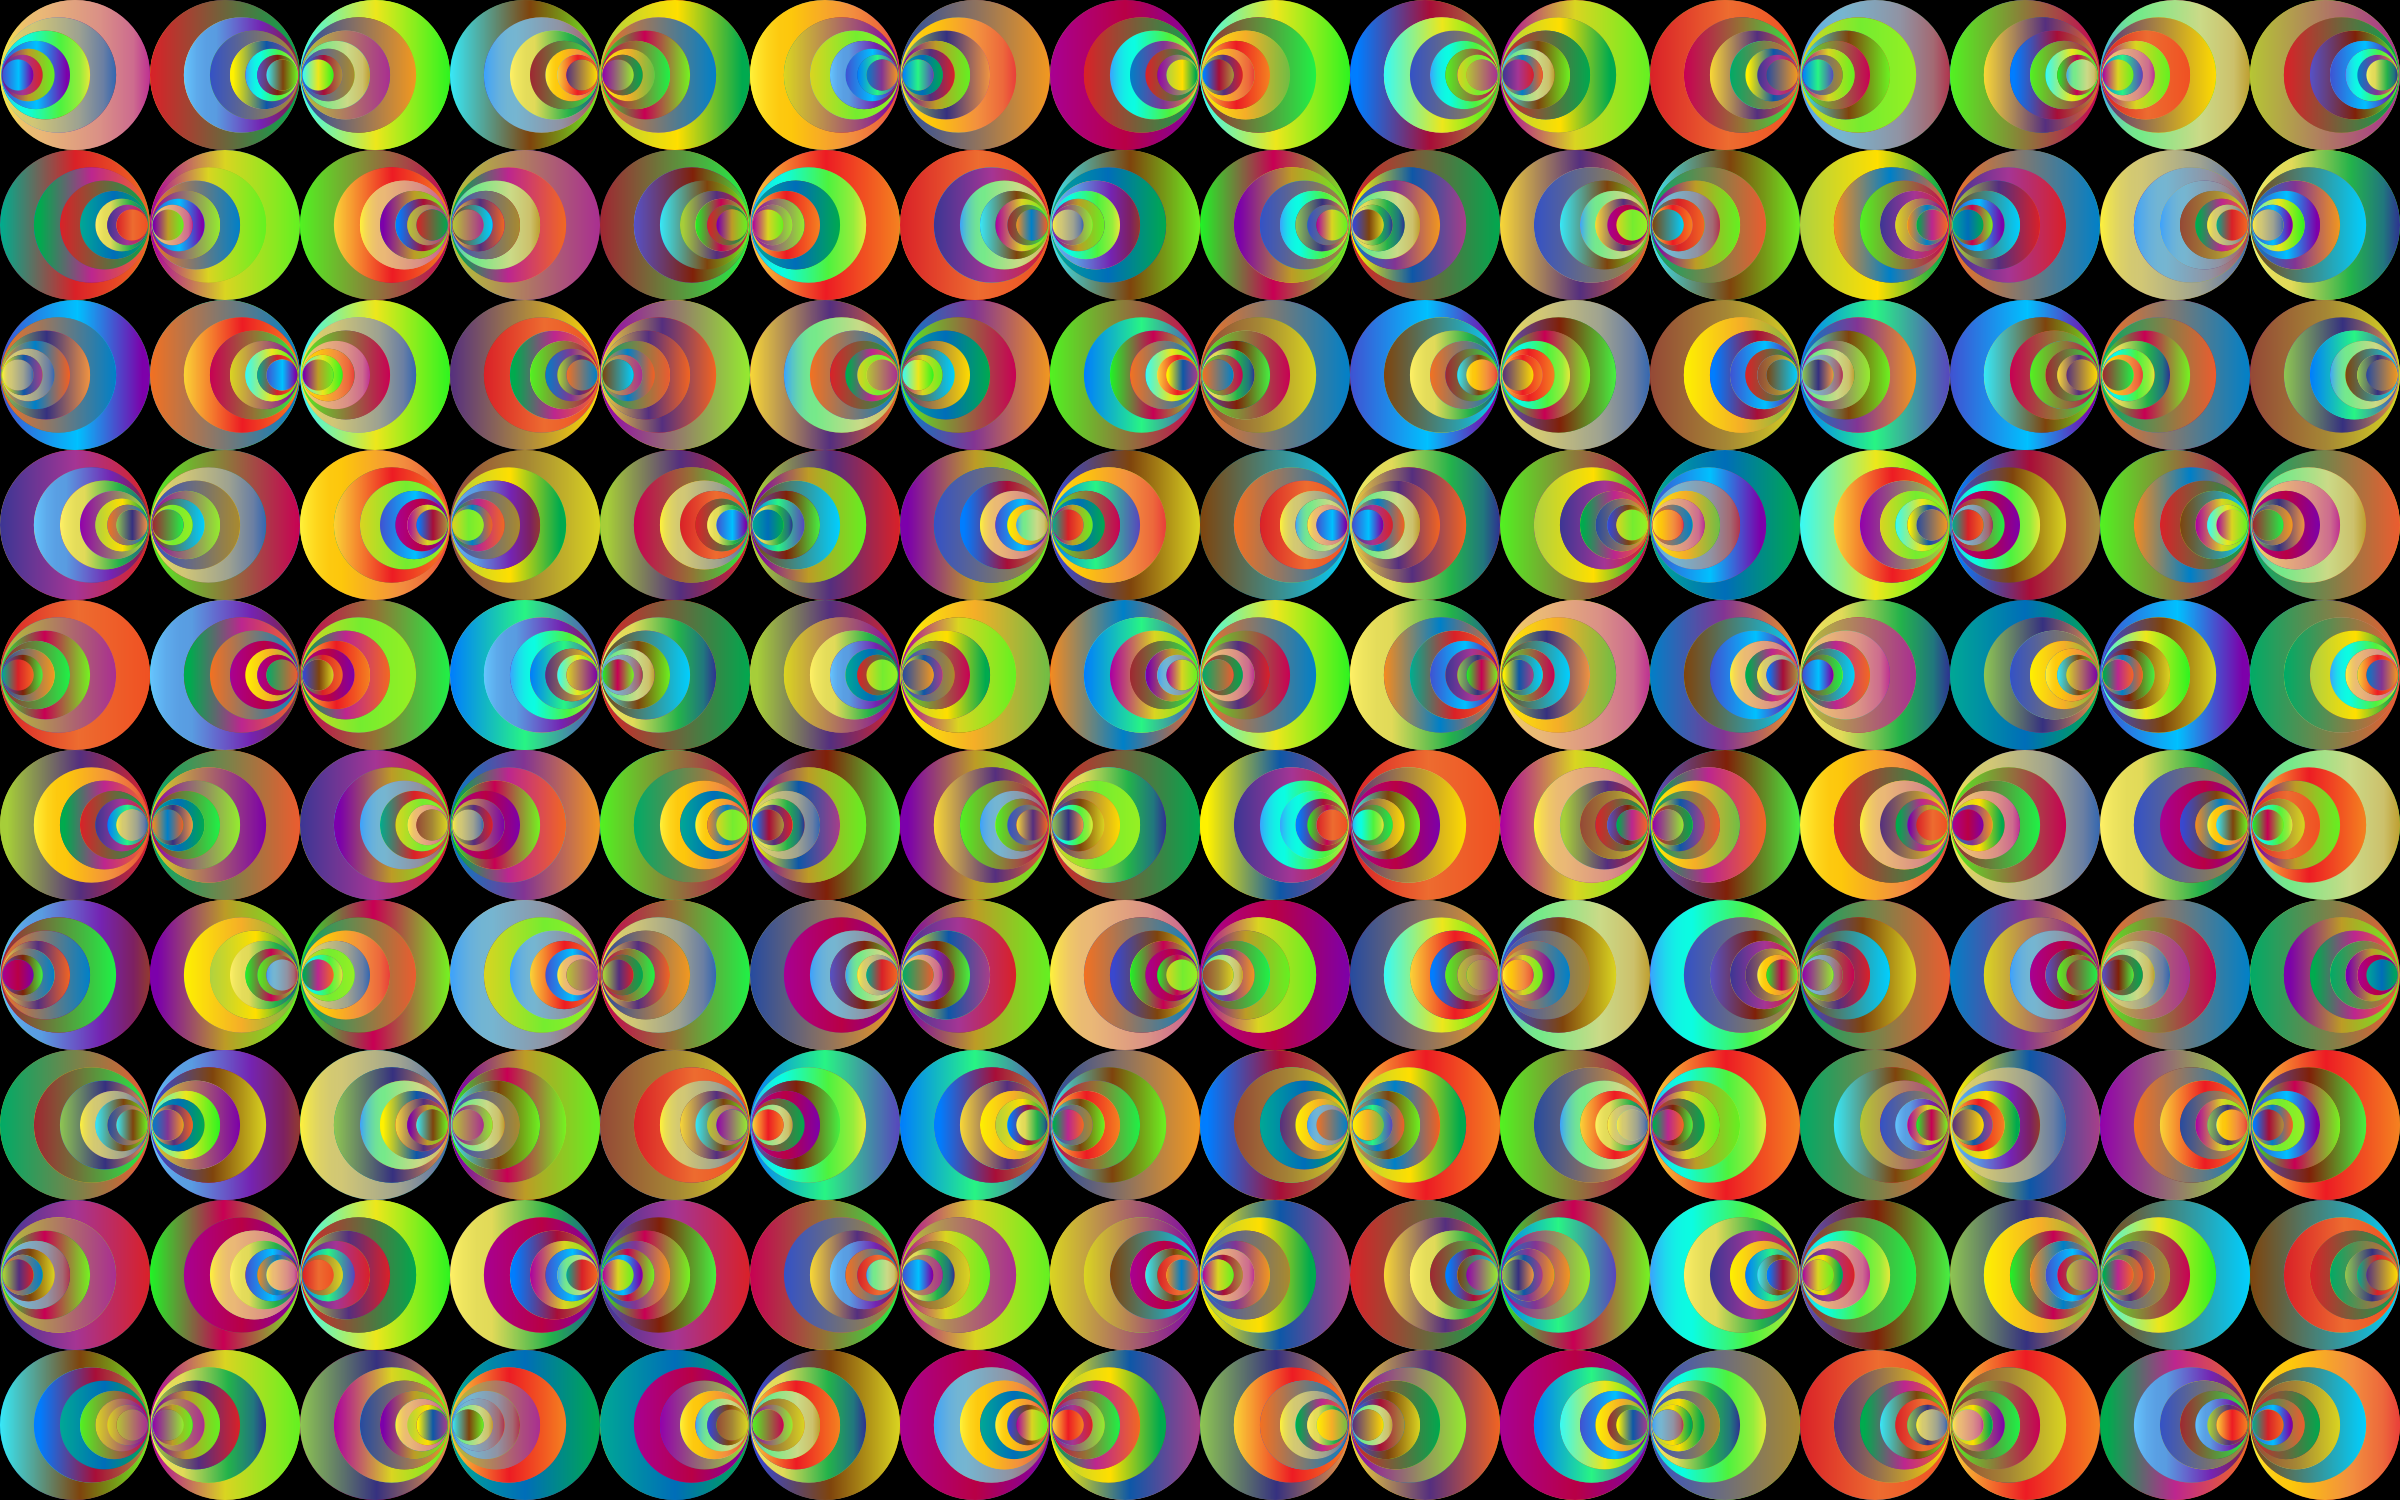 Retro Circles Background 3 by GDJ